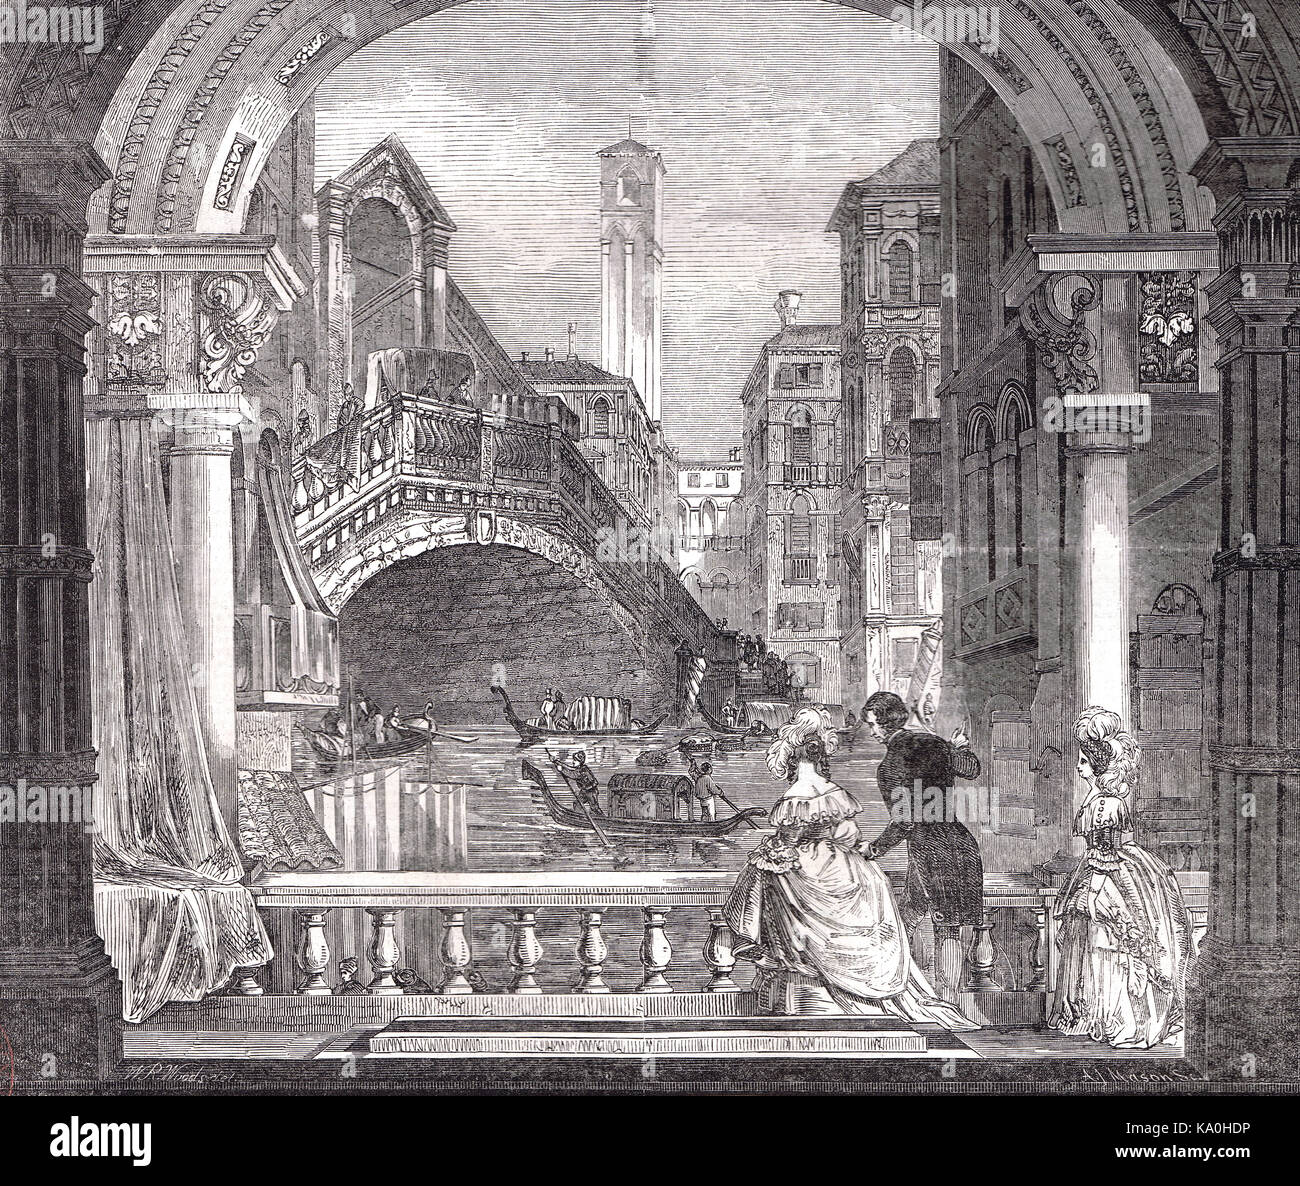 New picture-model, Rialto bridge, Venice, Italy, painted for Mayor's day 1848, Guildhall, London - Stock Image